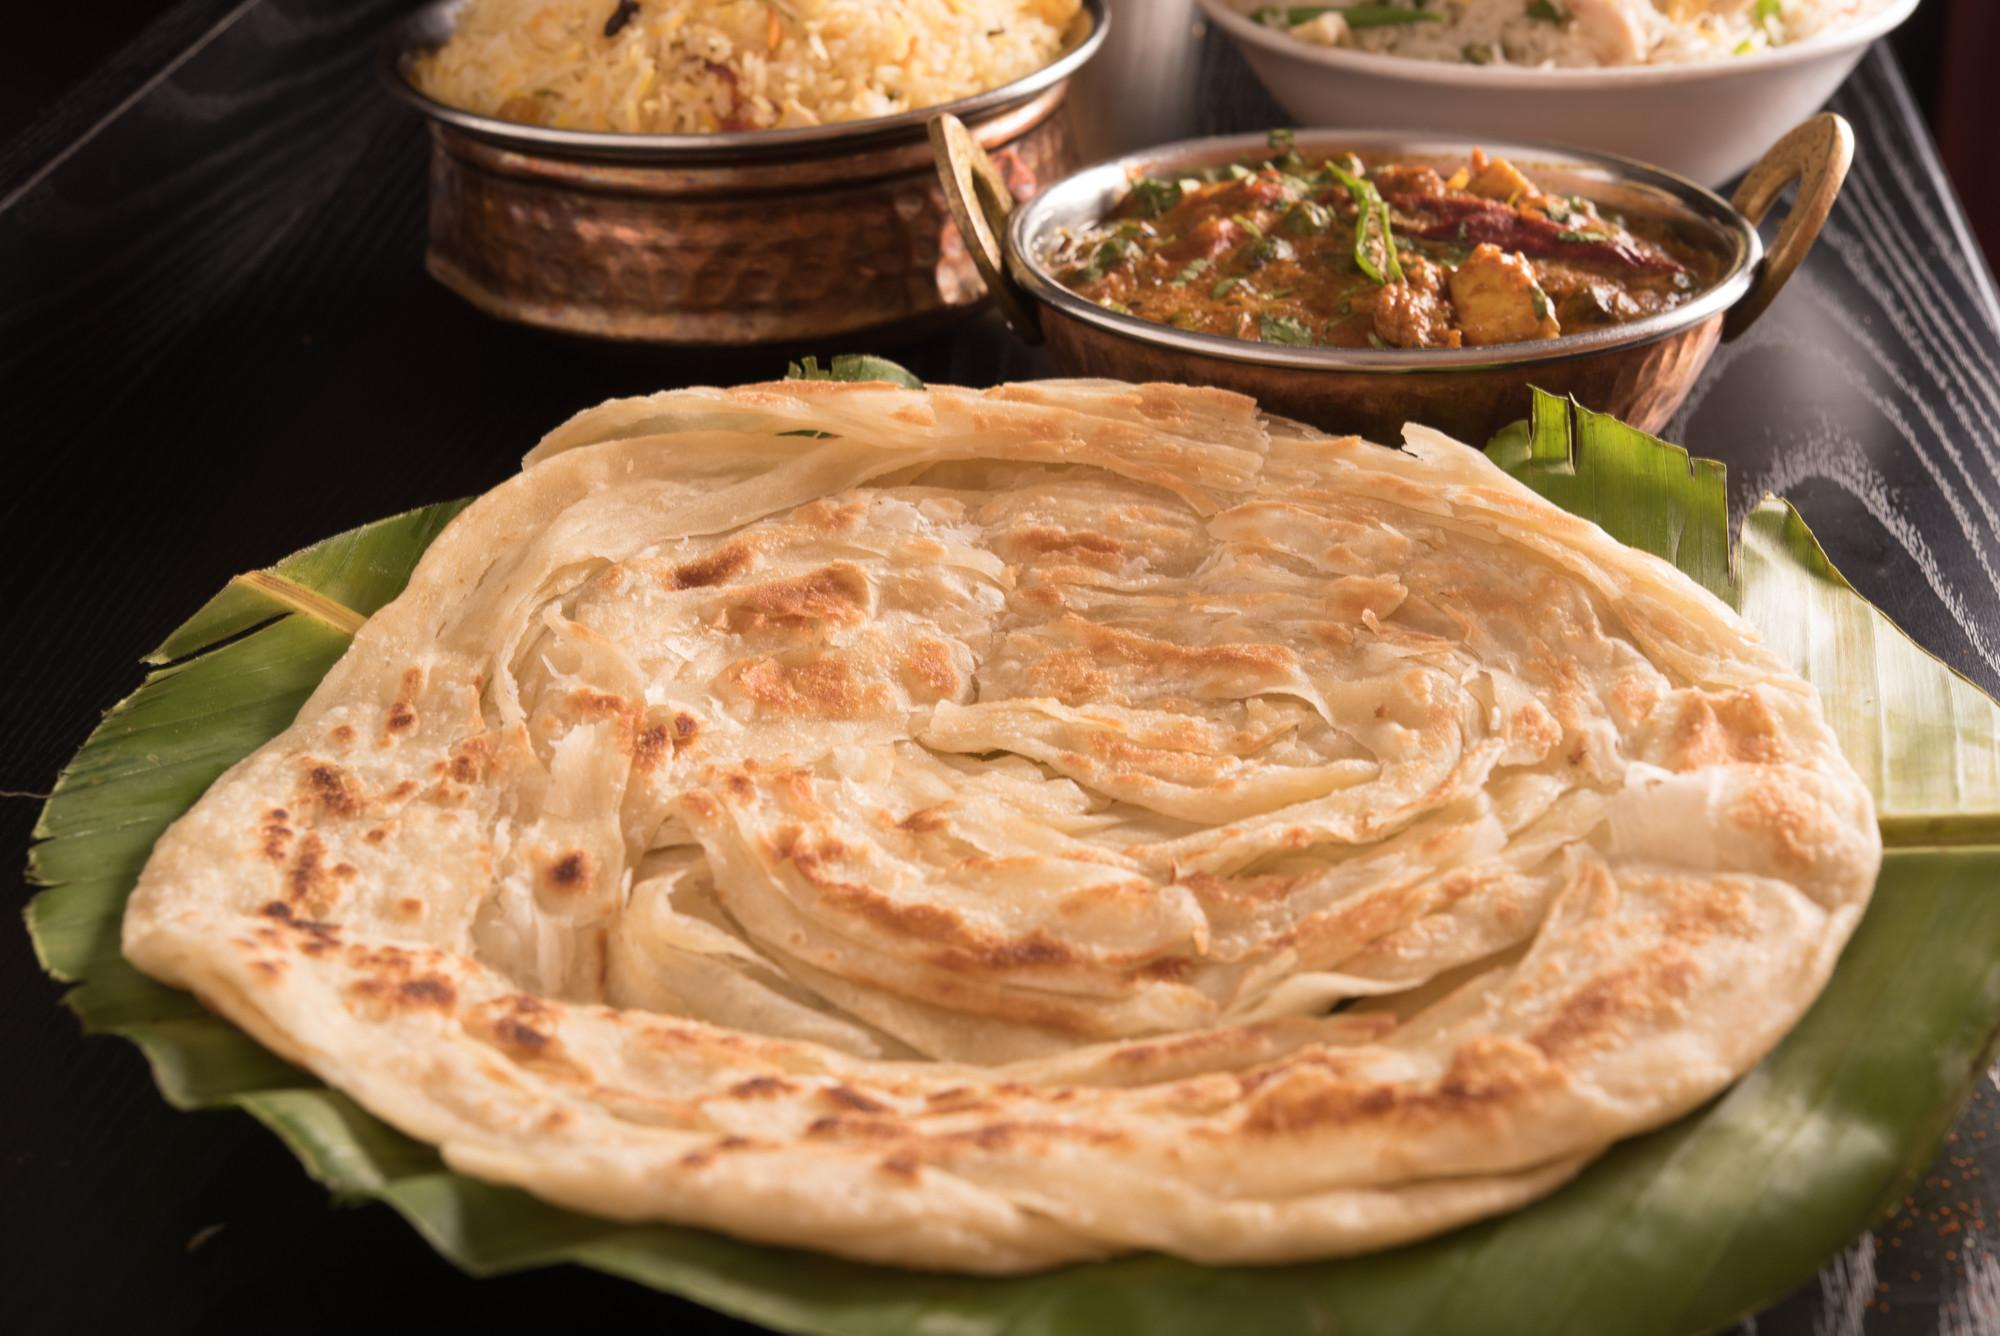 As part of the meal, Nguyen made a popular South Asian-style fried bread called paratha.